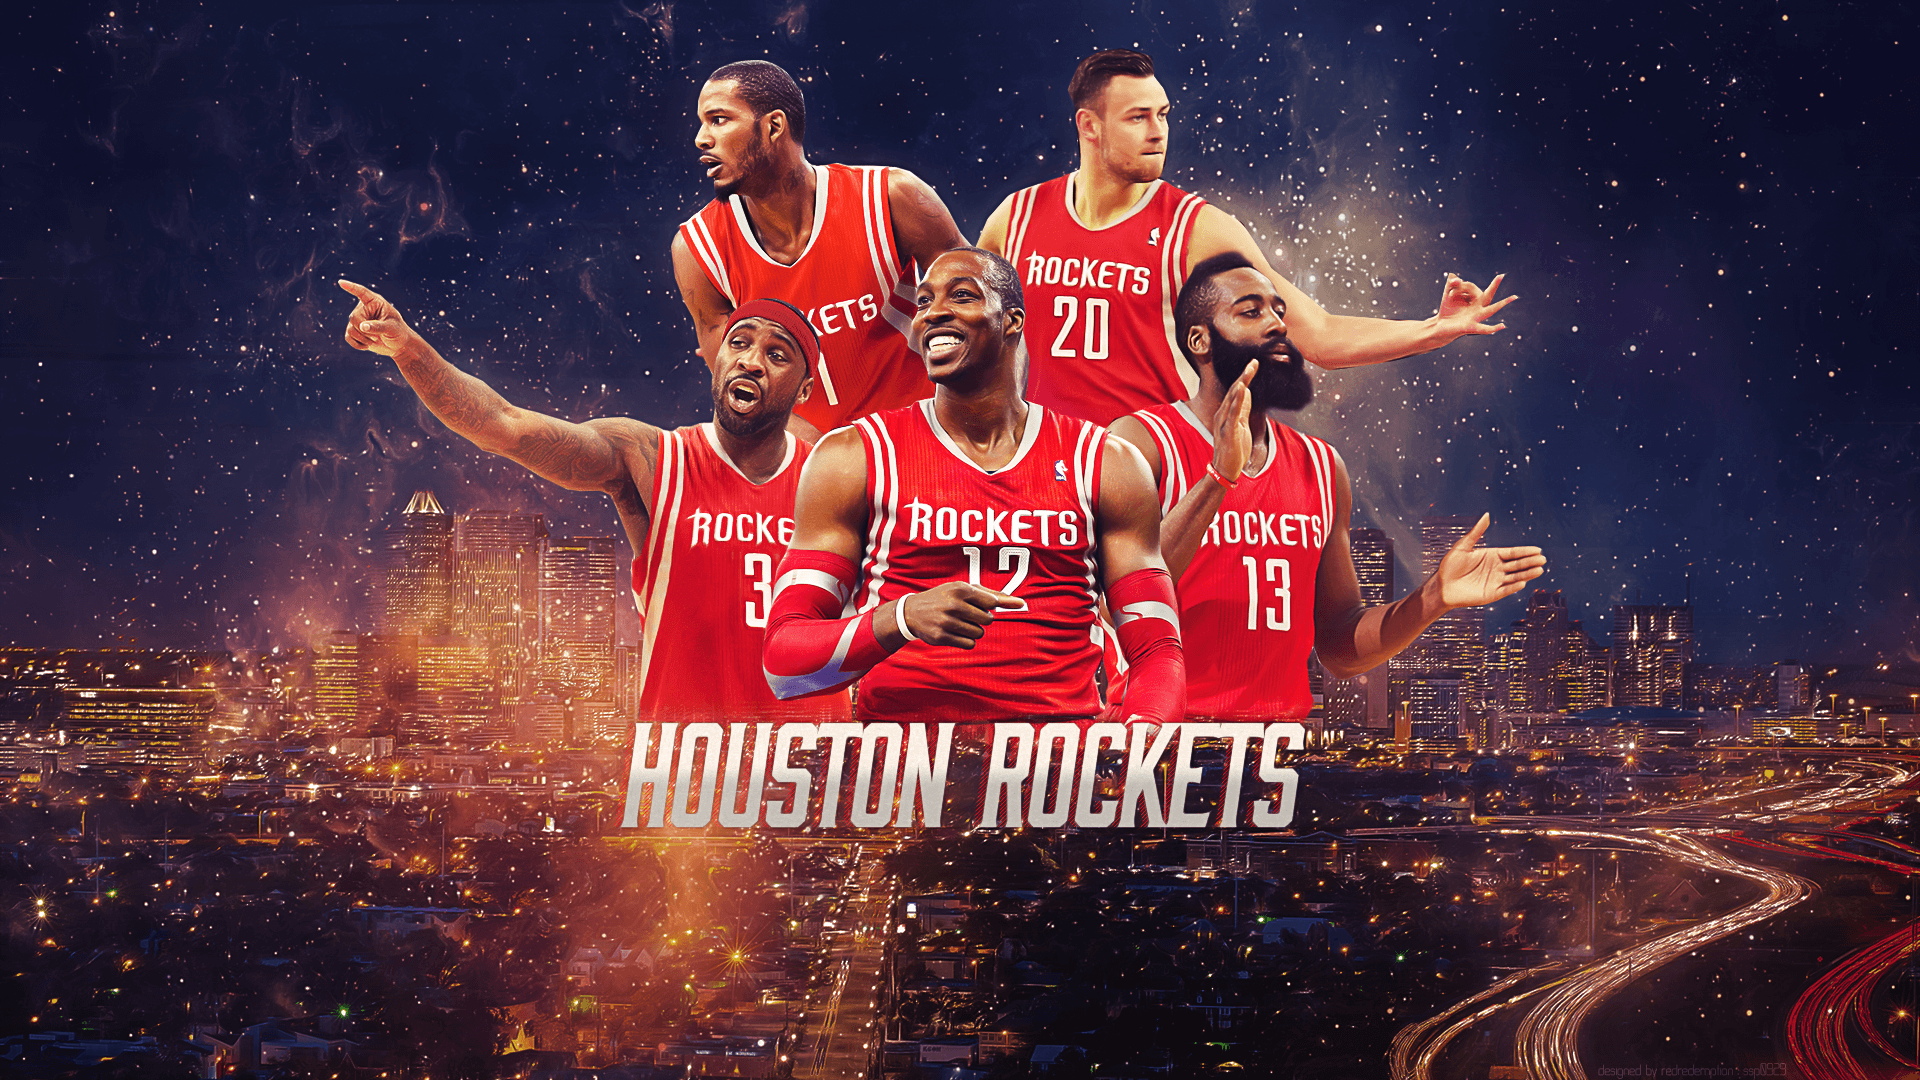 NBA Houston Rockets Team wallpapers HD 2016 in Basketball